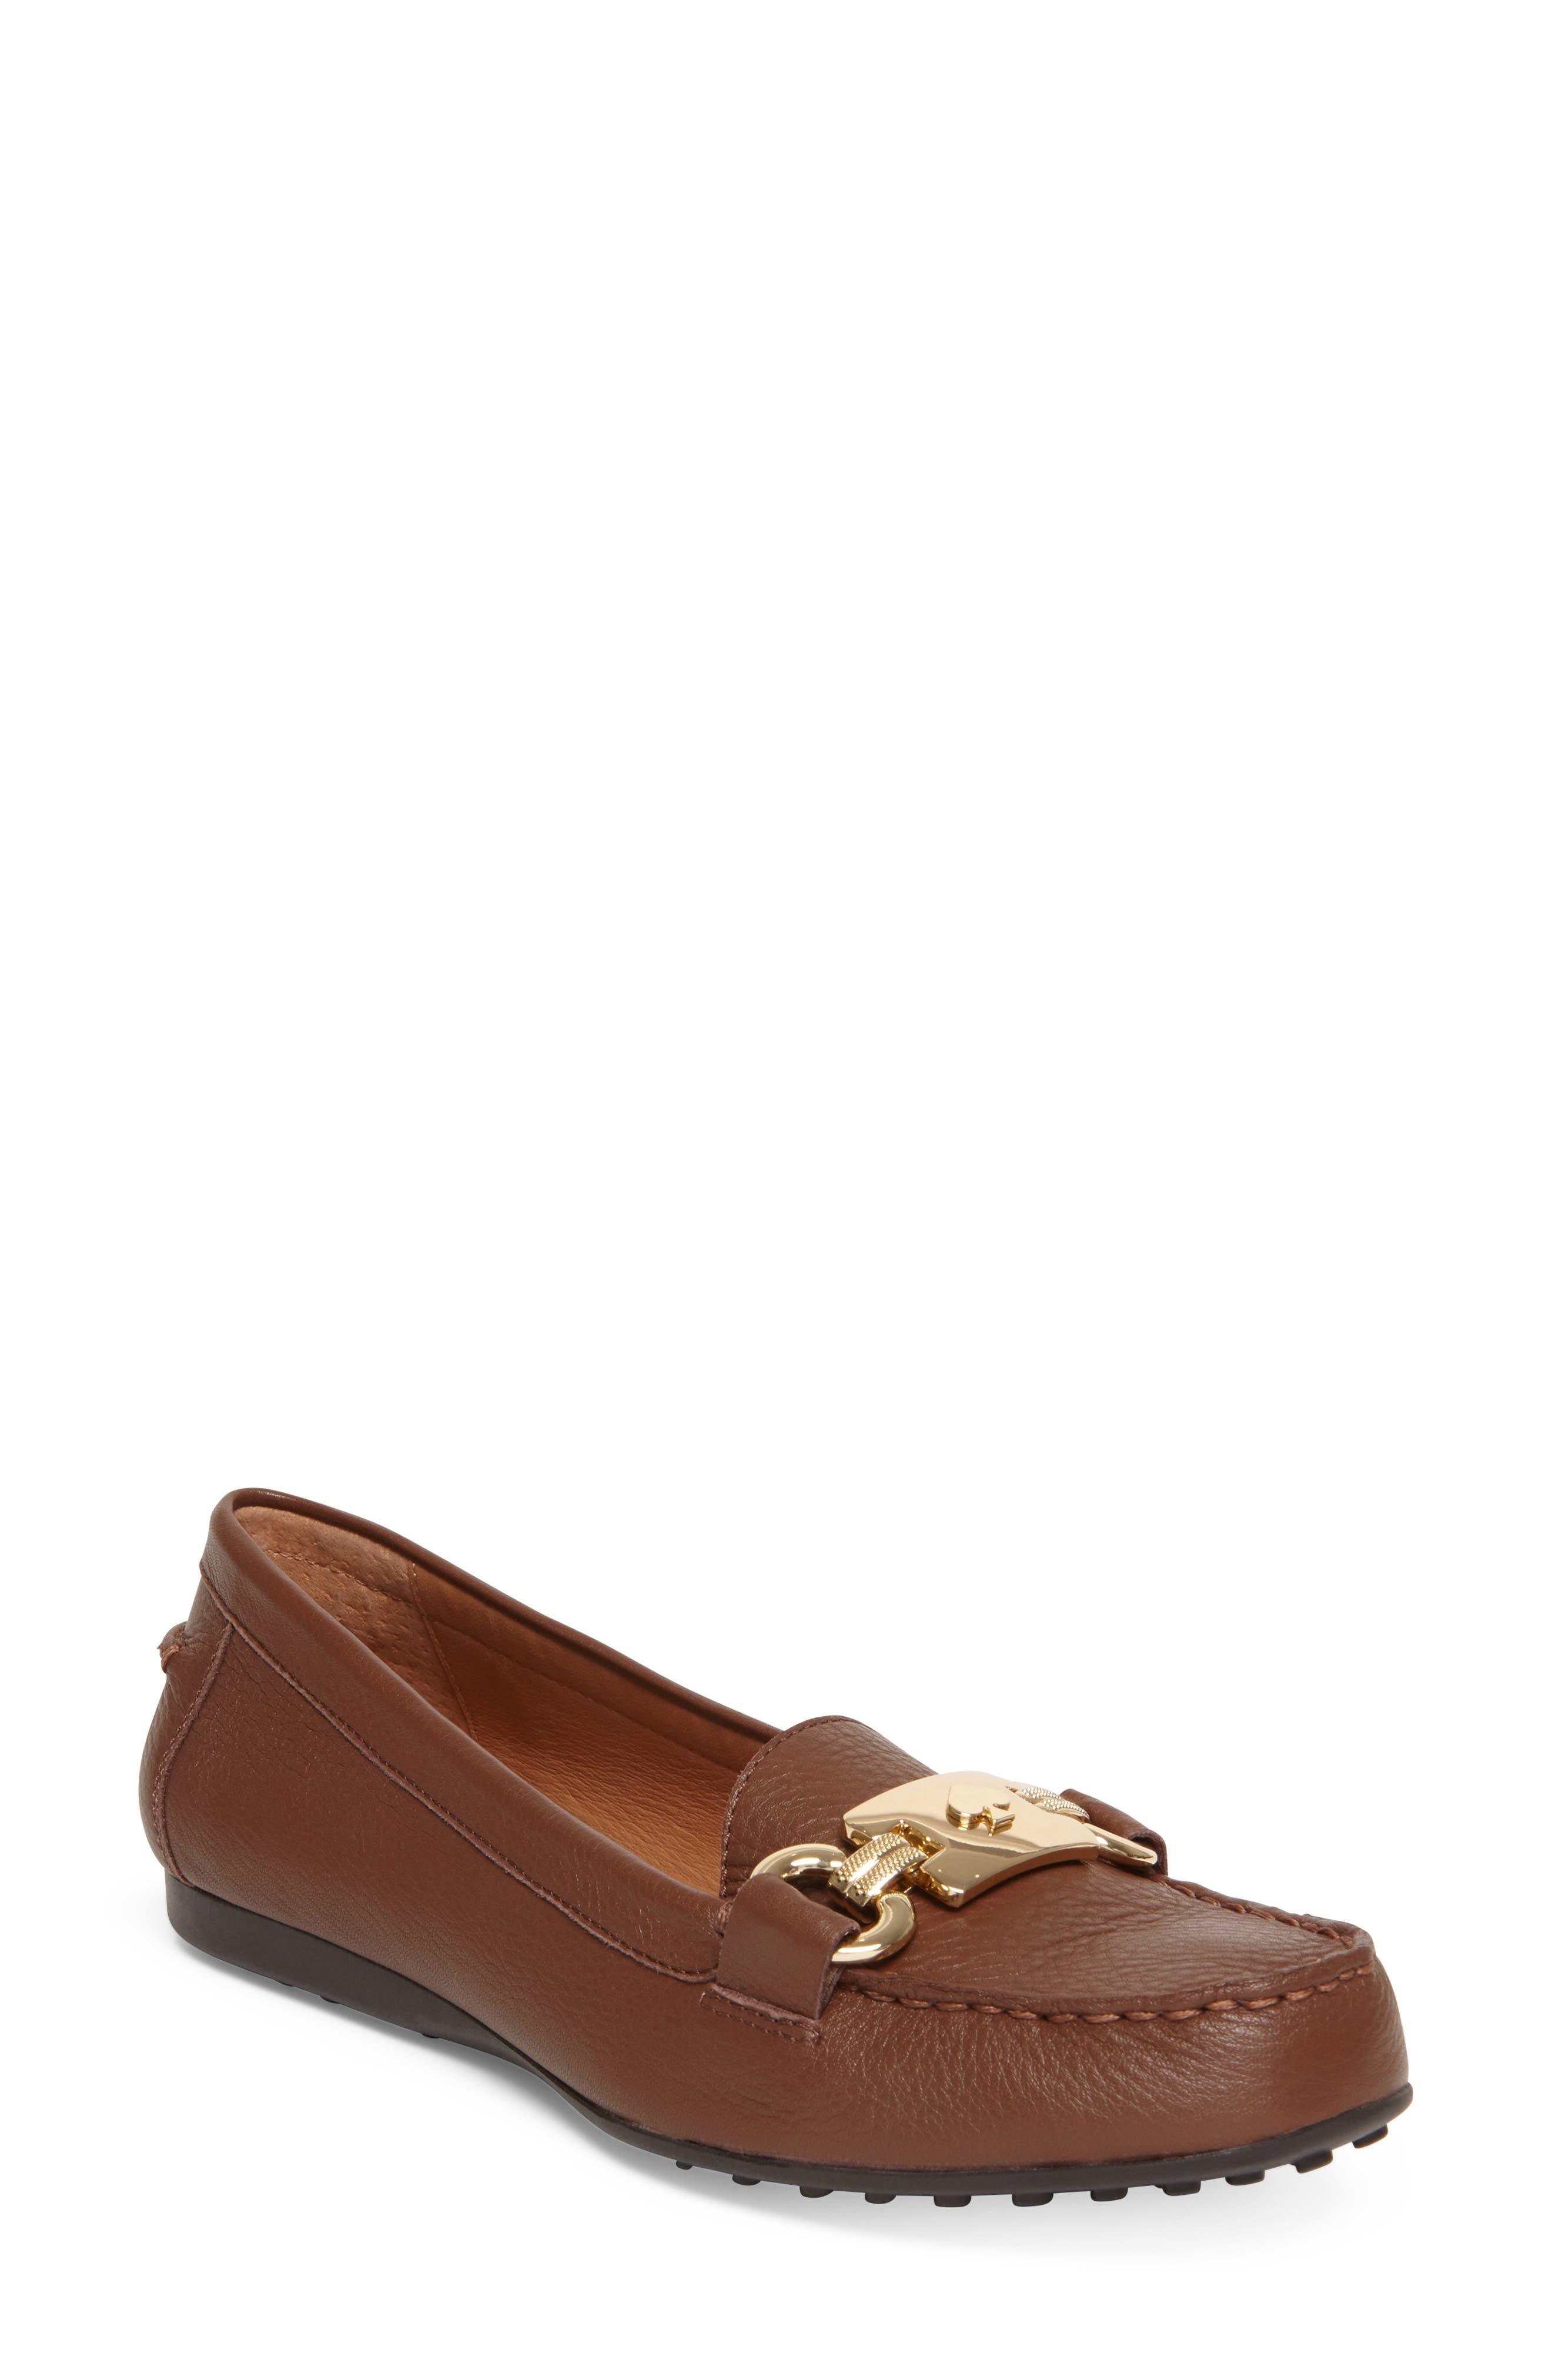 Kate Spade New York Carson Loafer- Brown